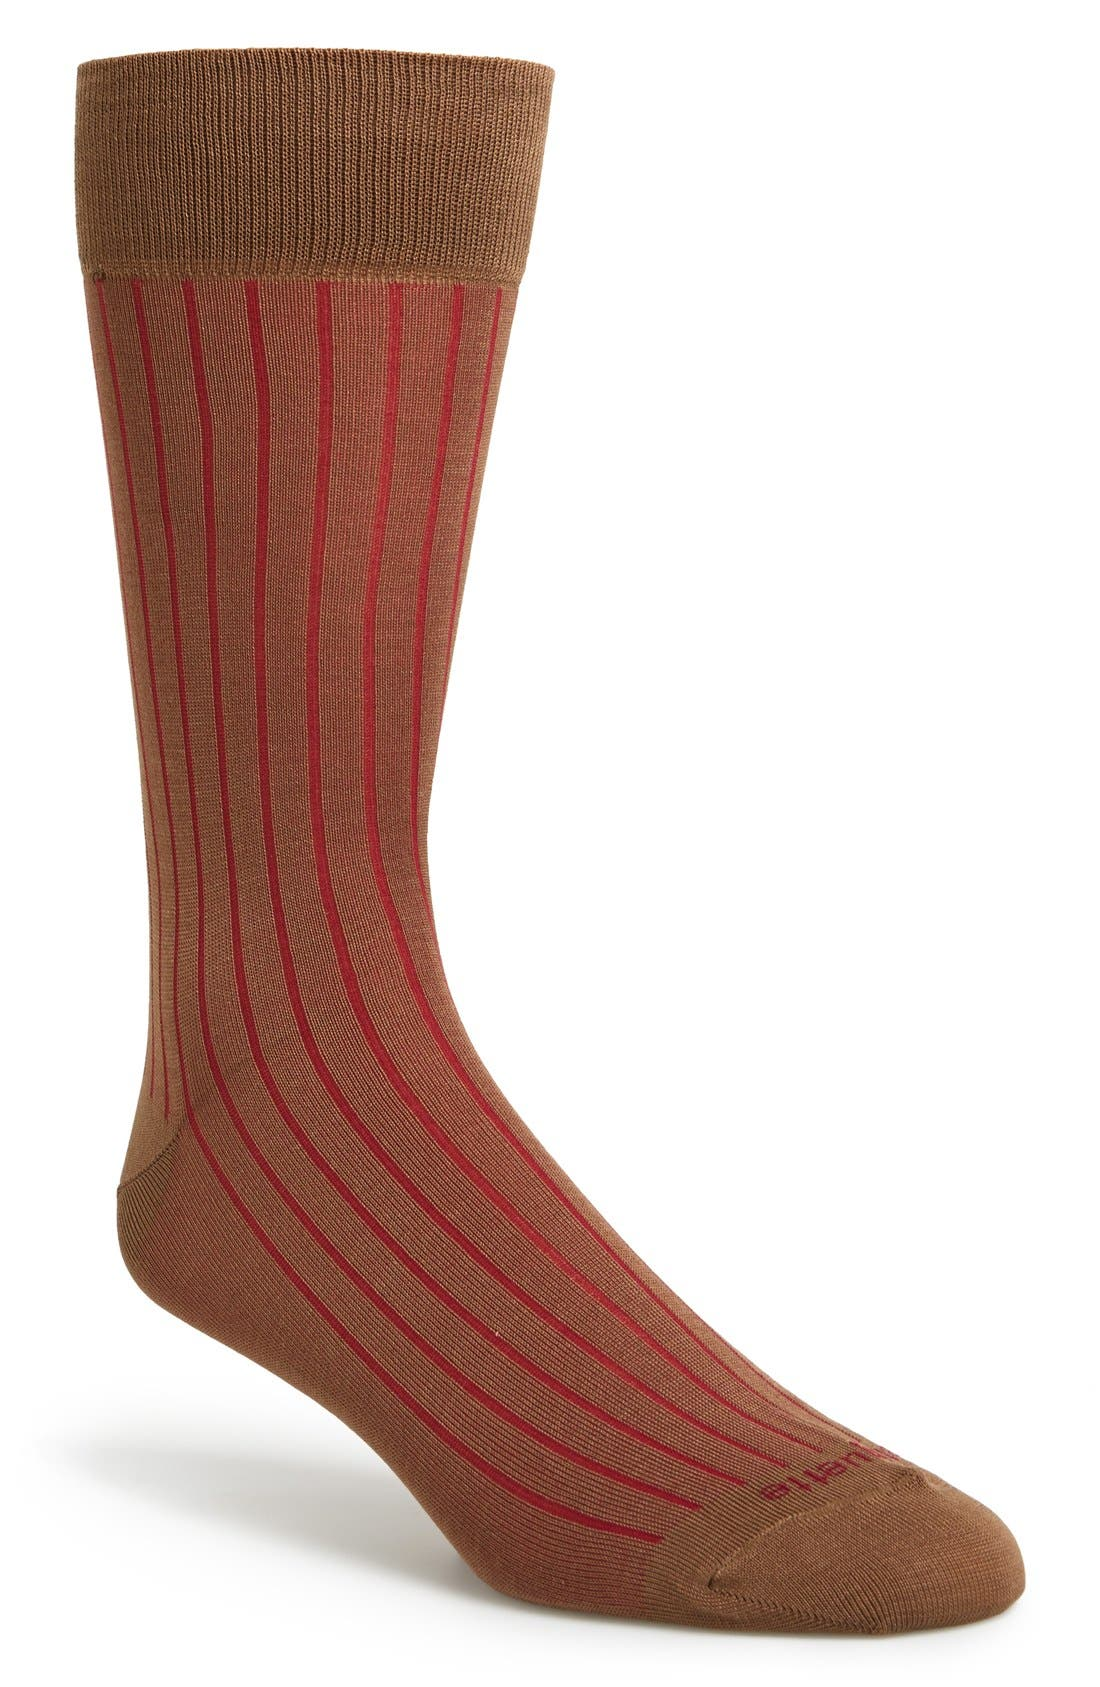 Alternate Image 1 Selected - Etiquette Clothiers 'Royal Rib' Socks